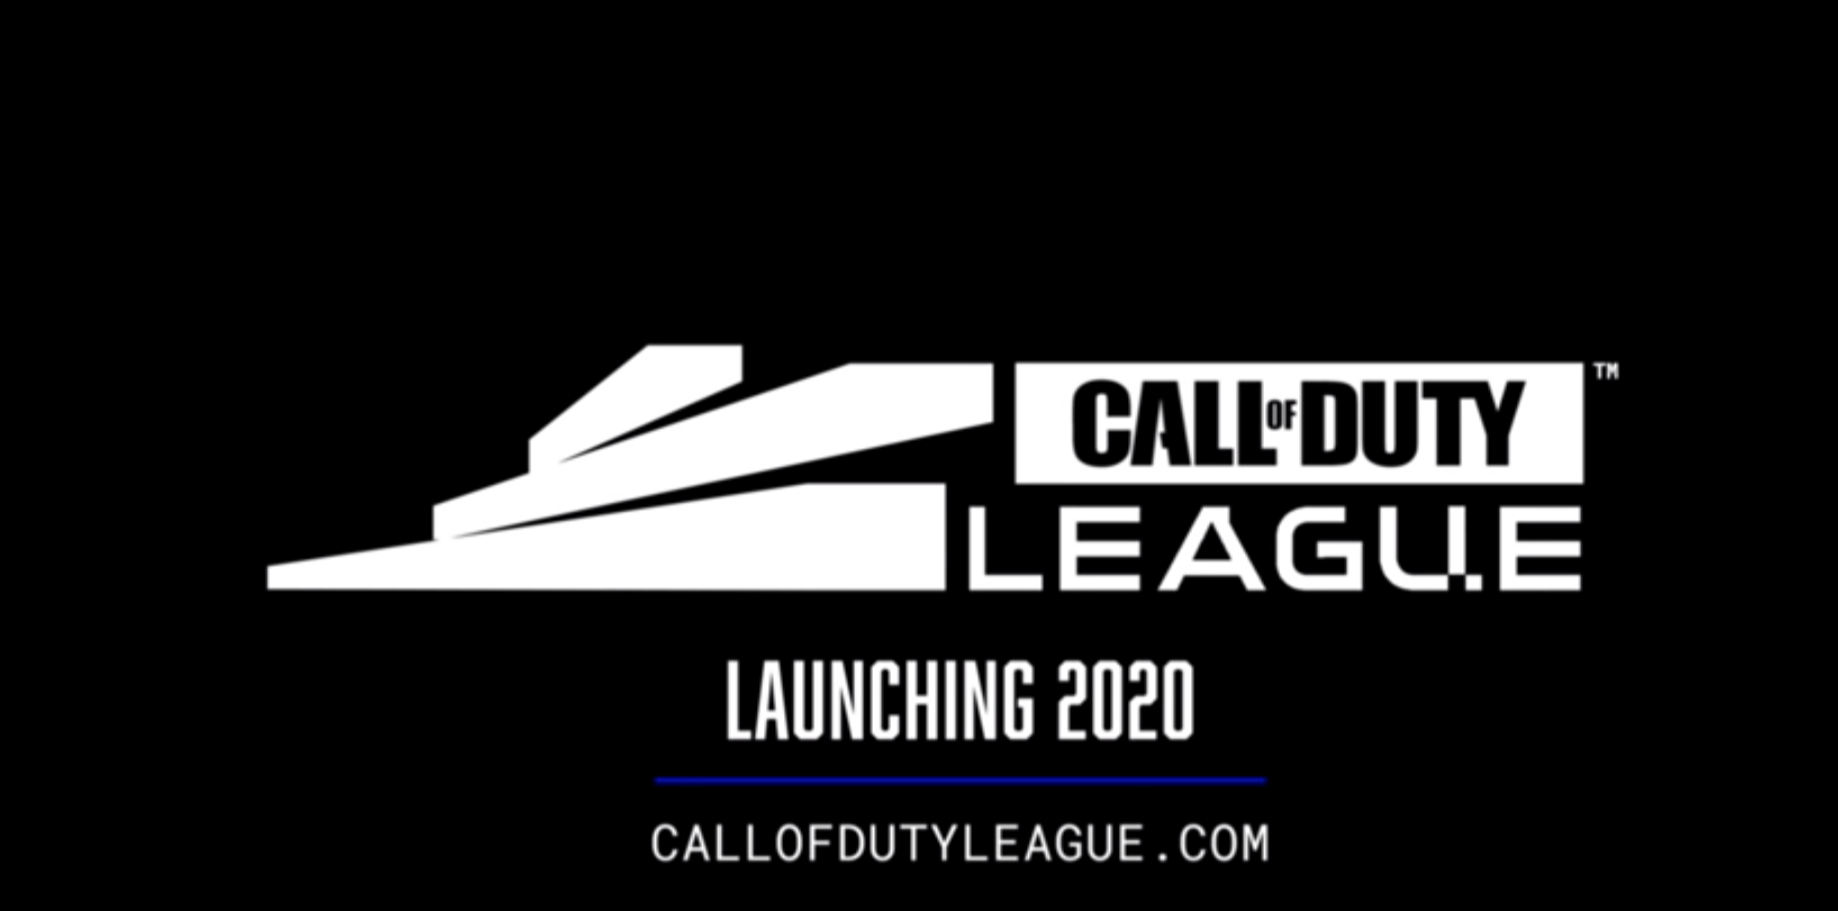 Call Of Duty League Is Kicking Off January 24 And Is Bringing With It City-Based Team System